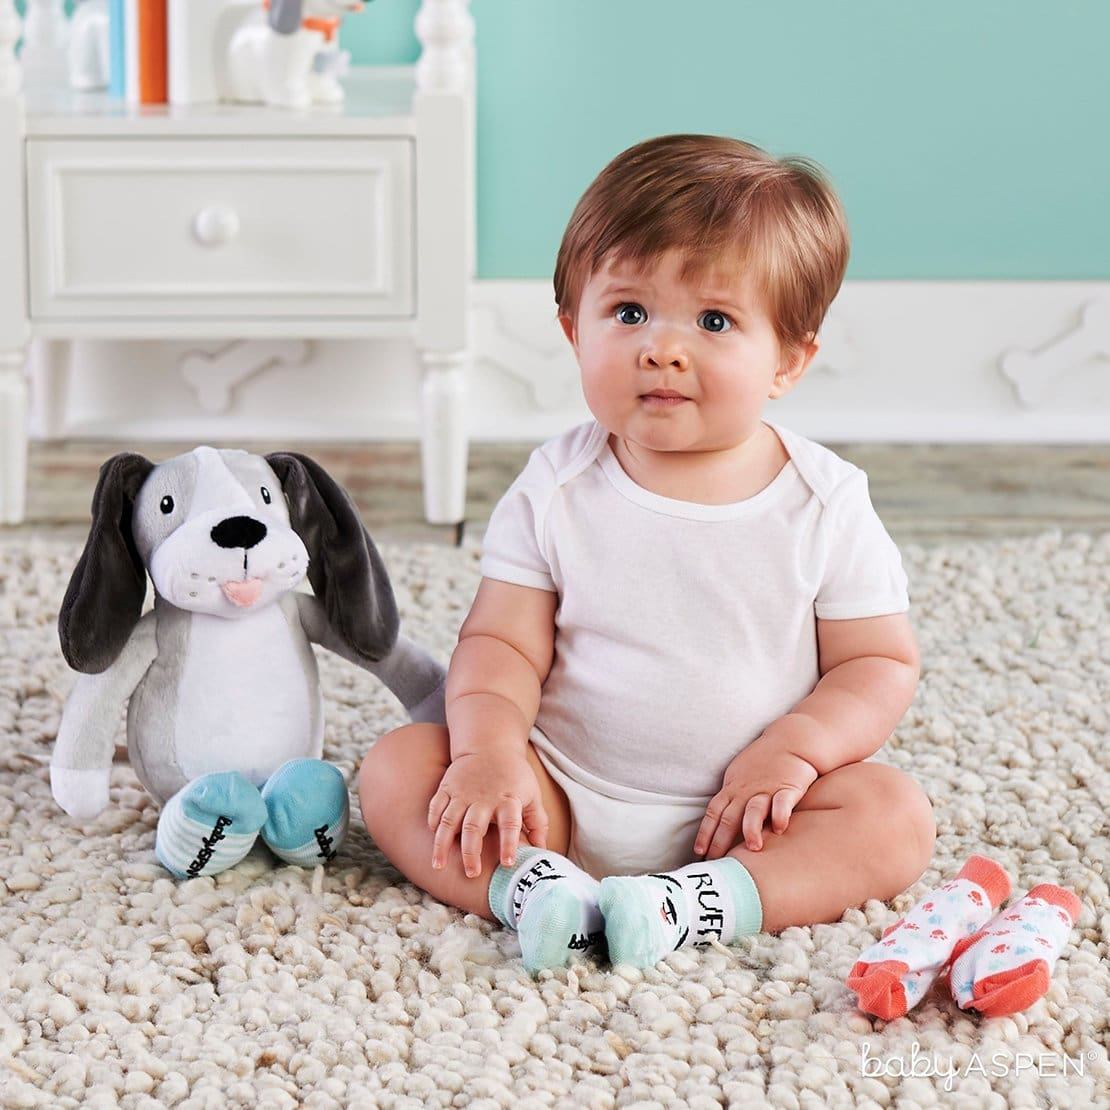 Parker the Puppy Plush Plus Socks | 7 Easy Room Decor From Baby to Toddler | Baby Aspen